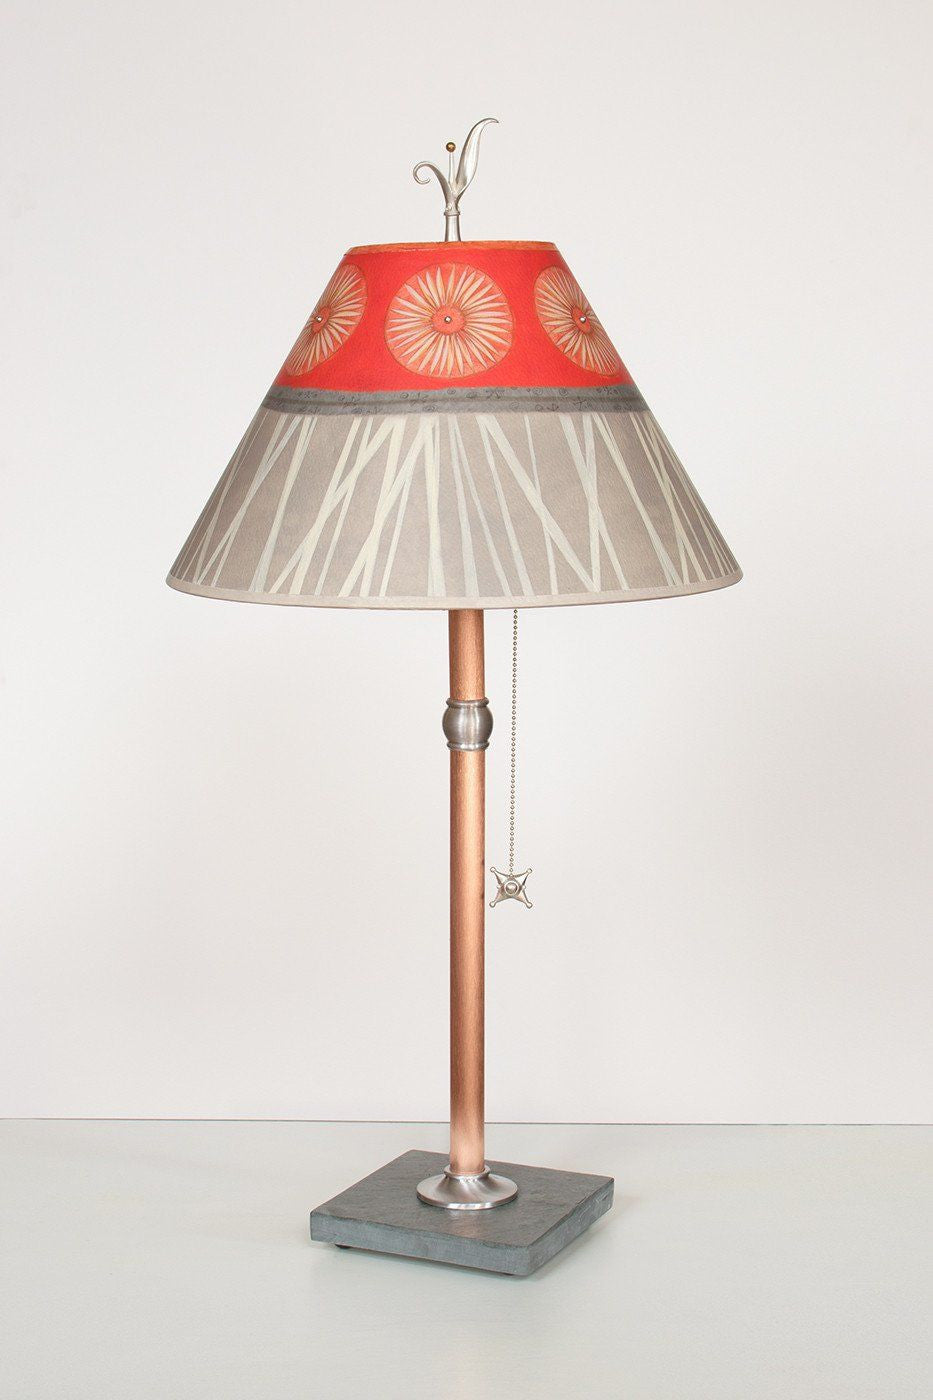 Copper Table Lamp with Medium Conical Shade in Tang - Lit